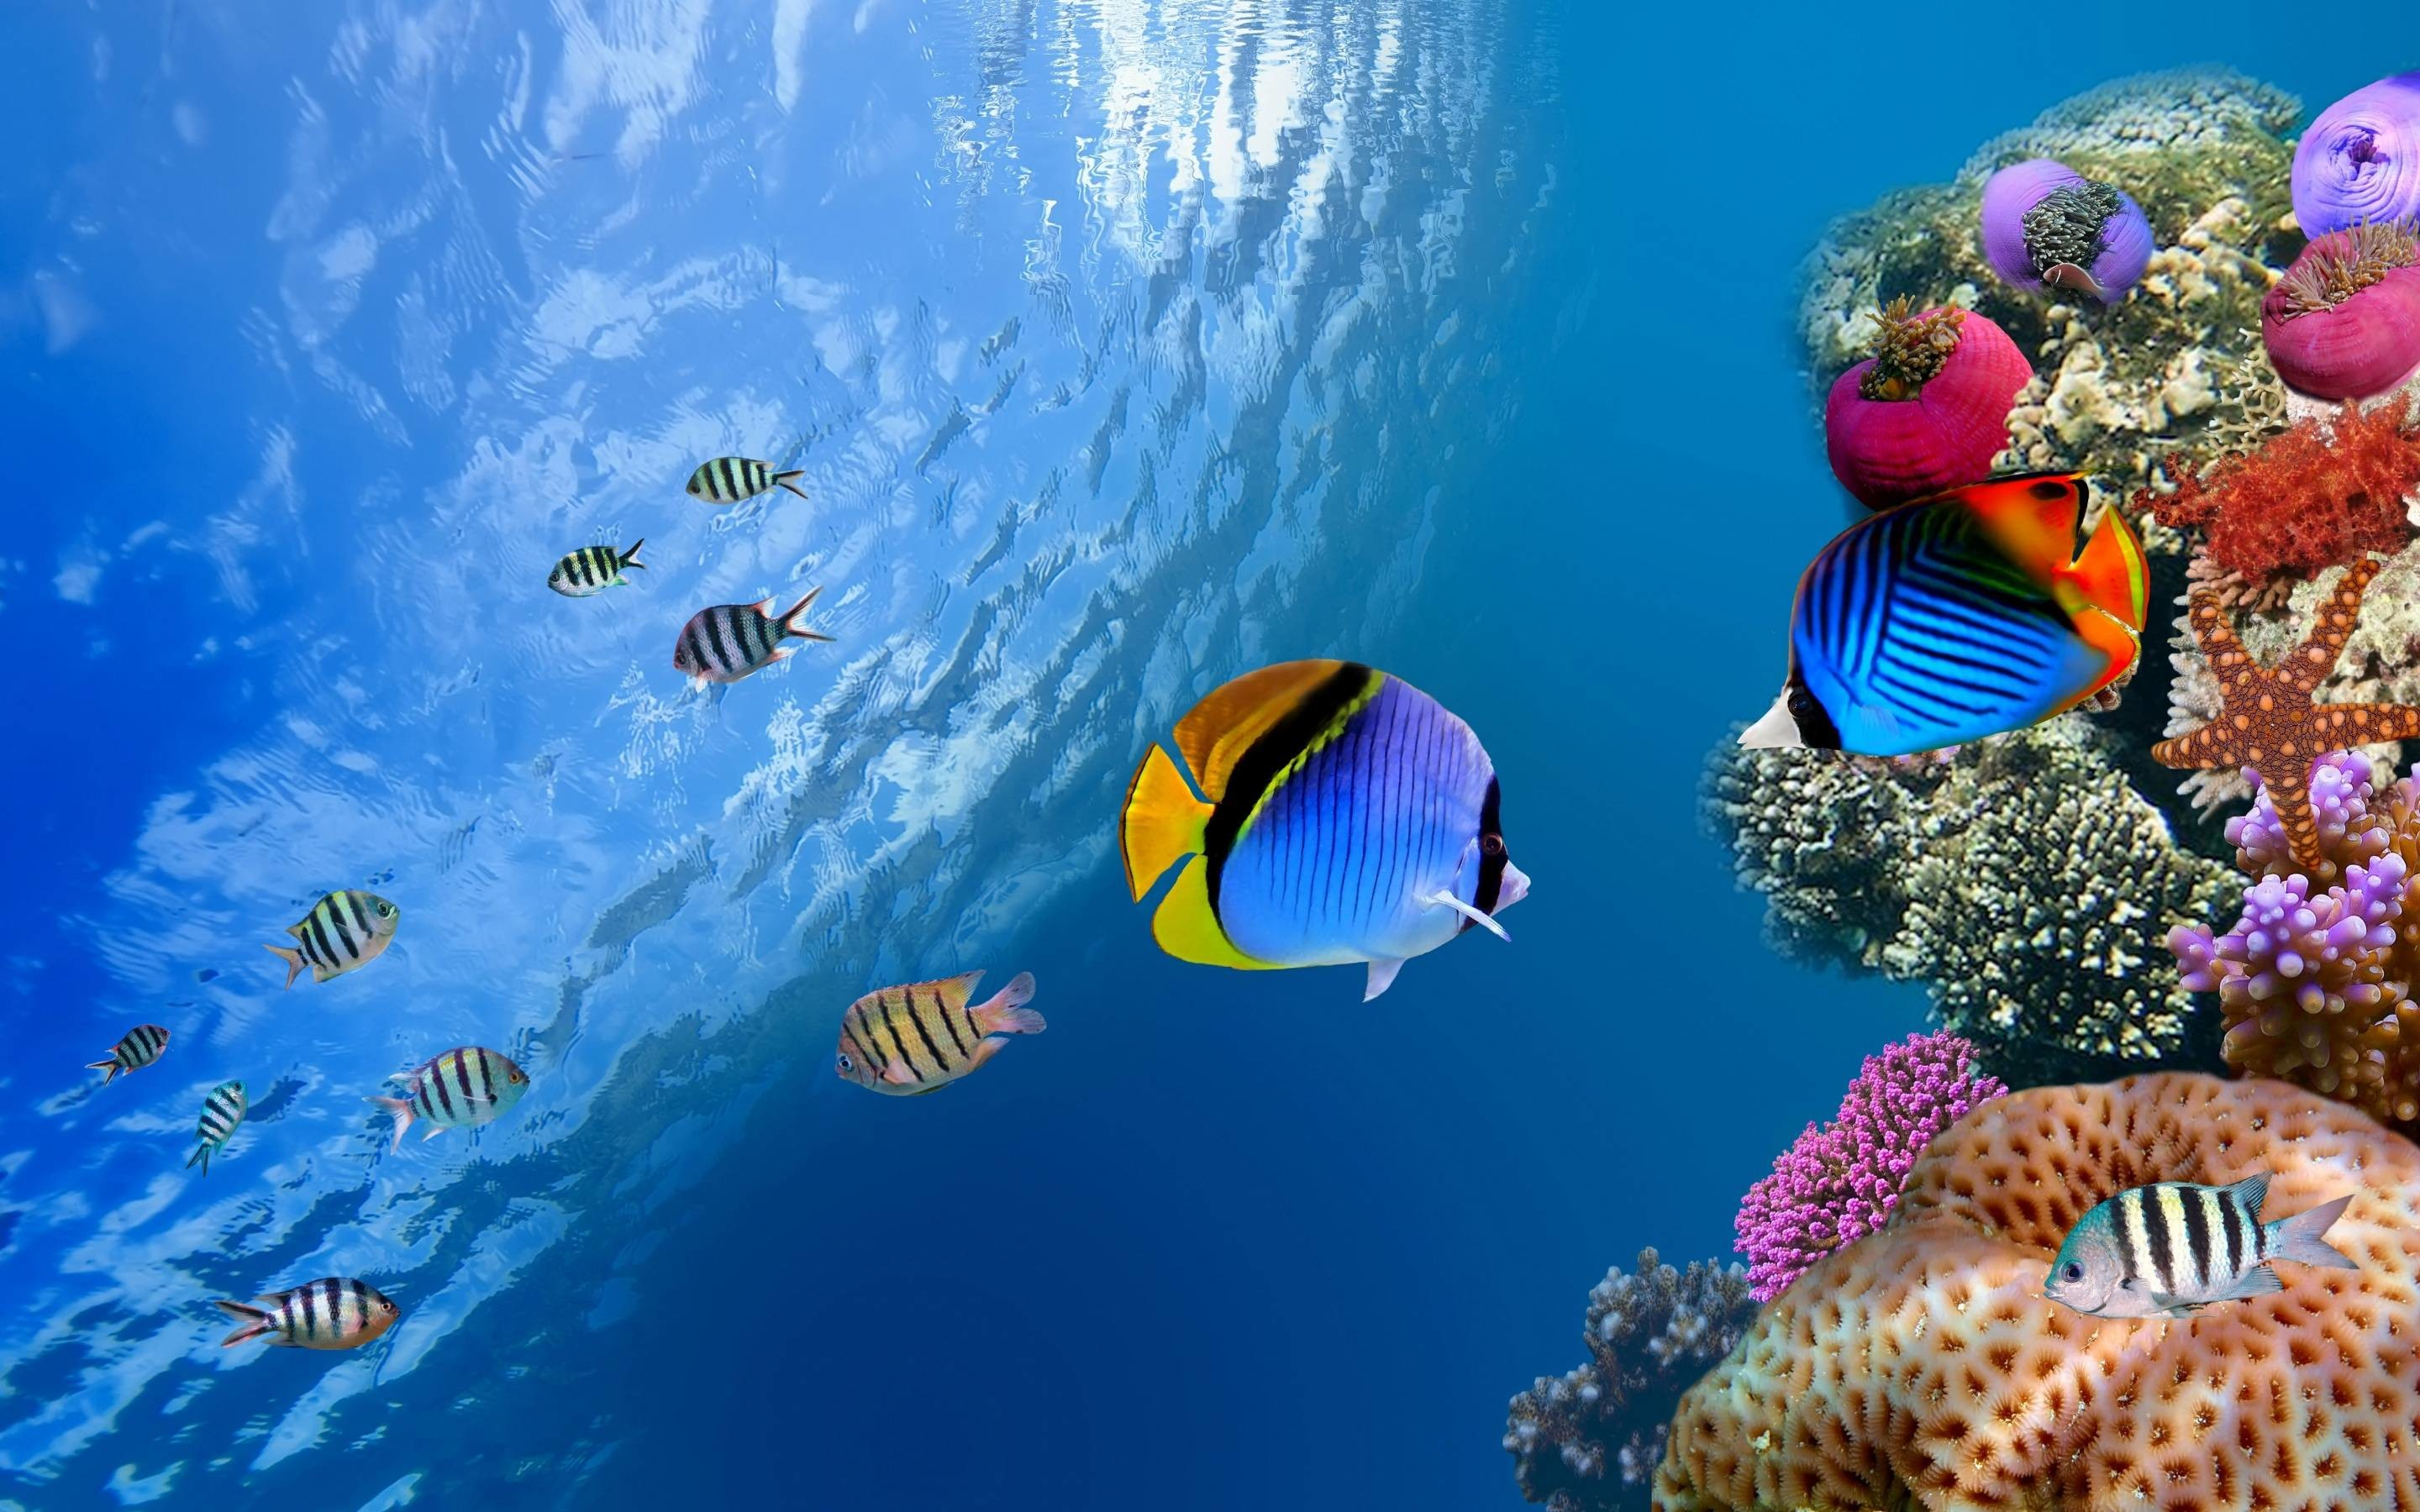 Res: 2880x1800, Underwater Wallpapers - Full HD wallpaper search